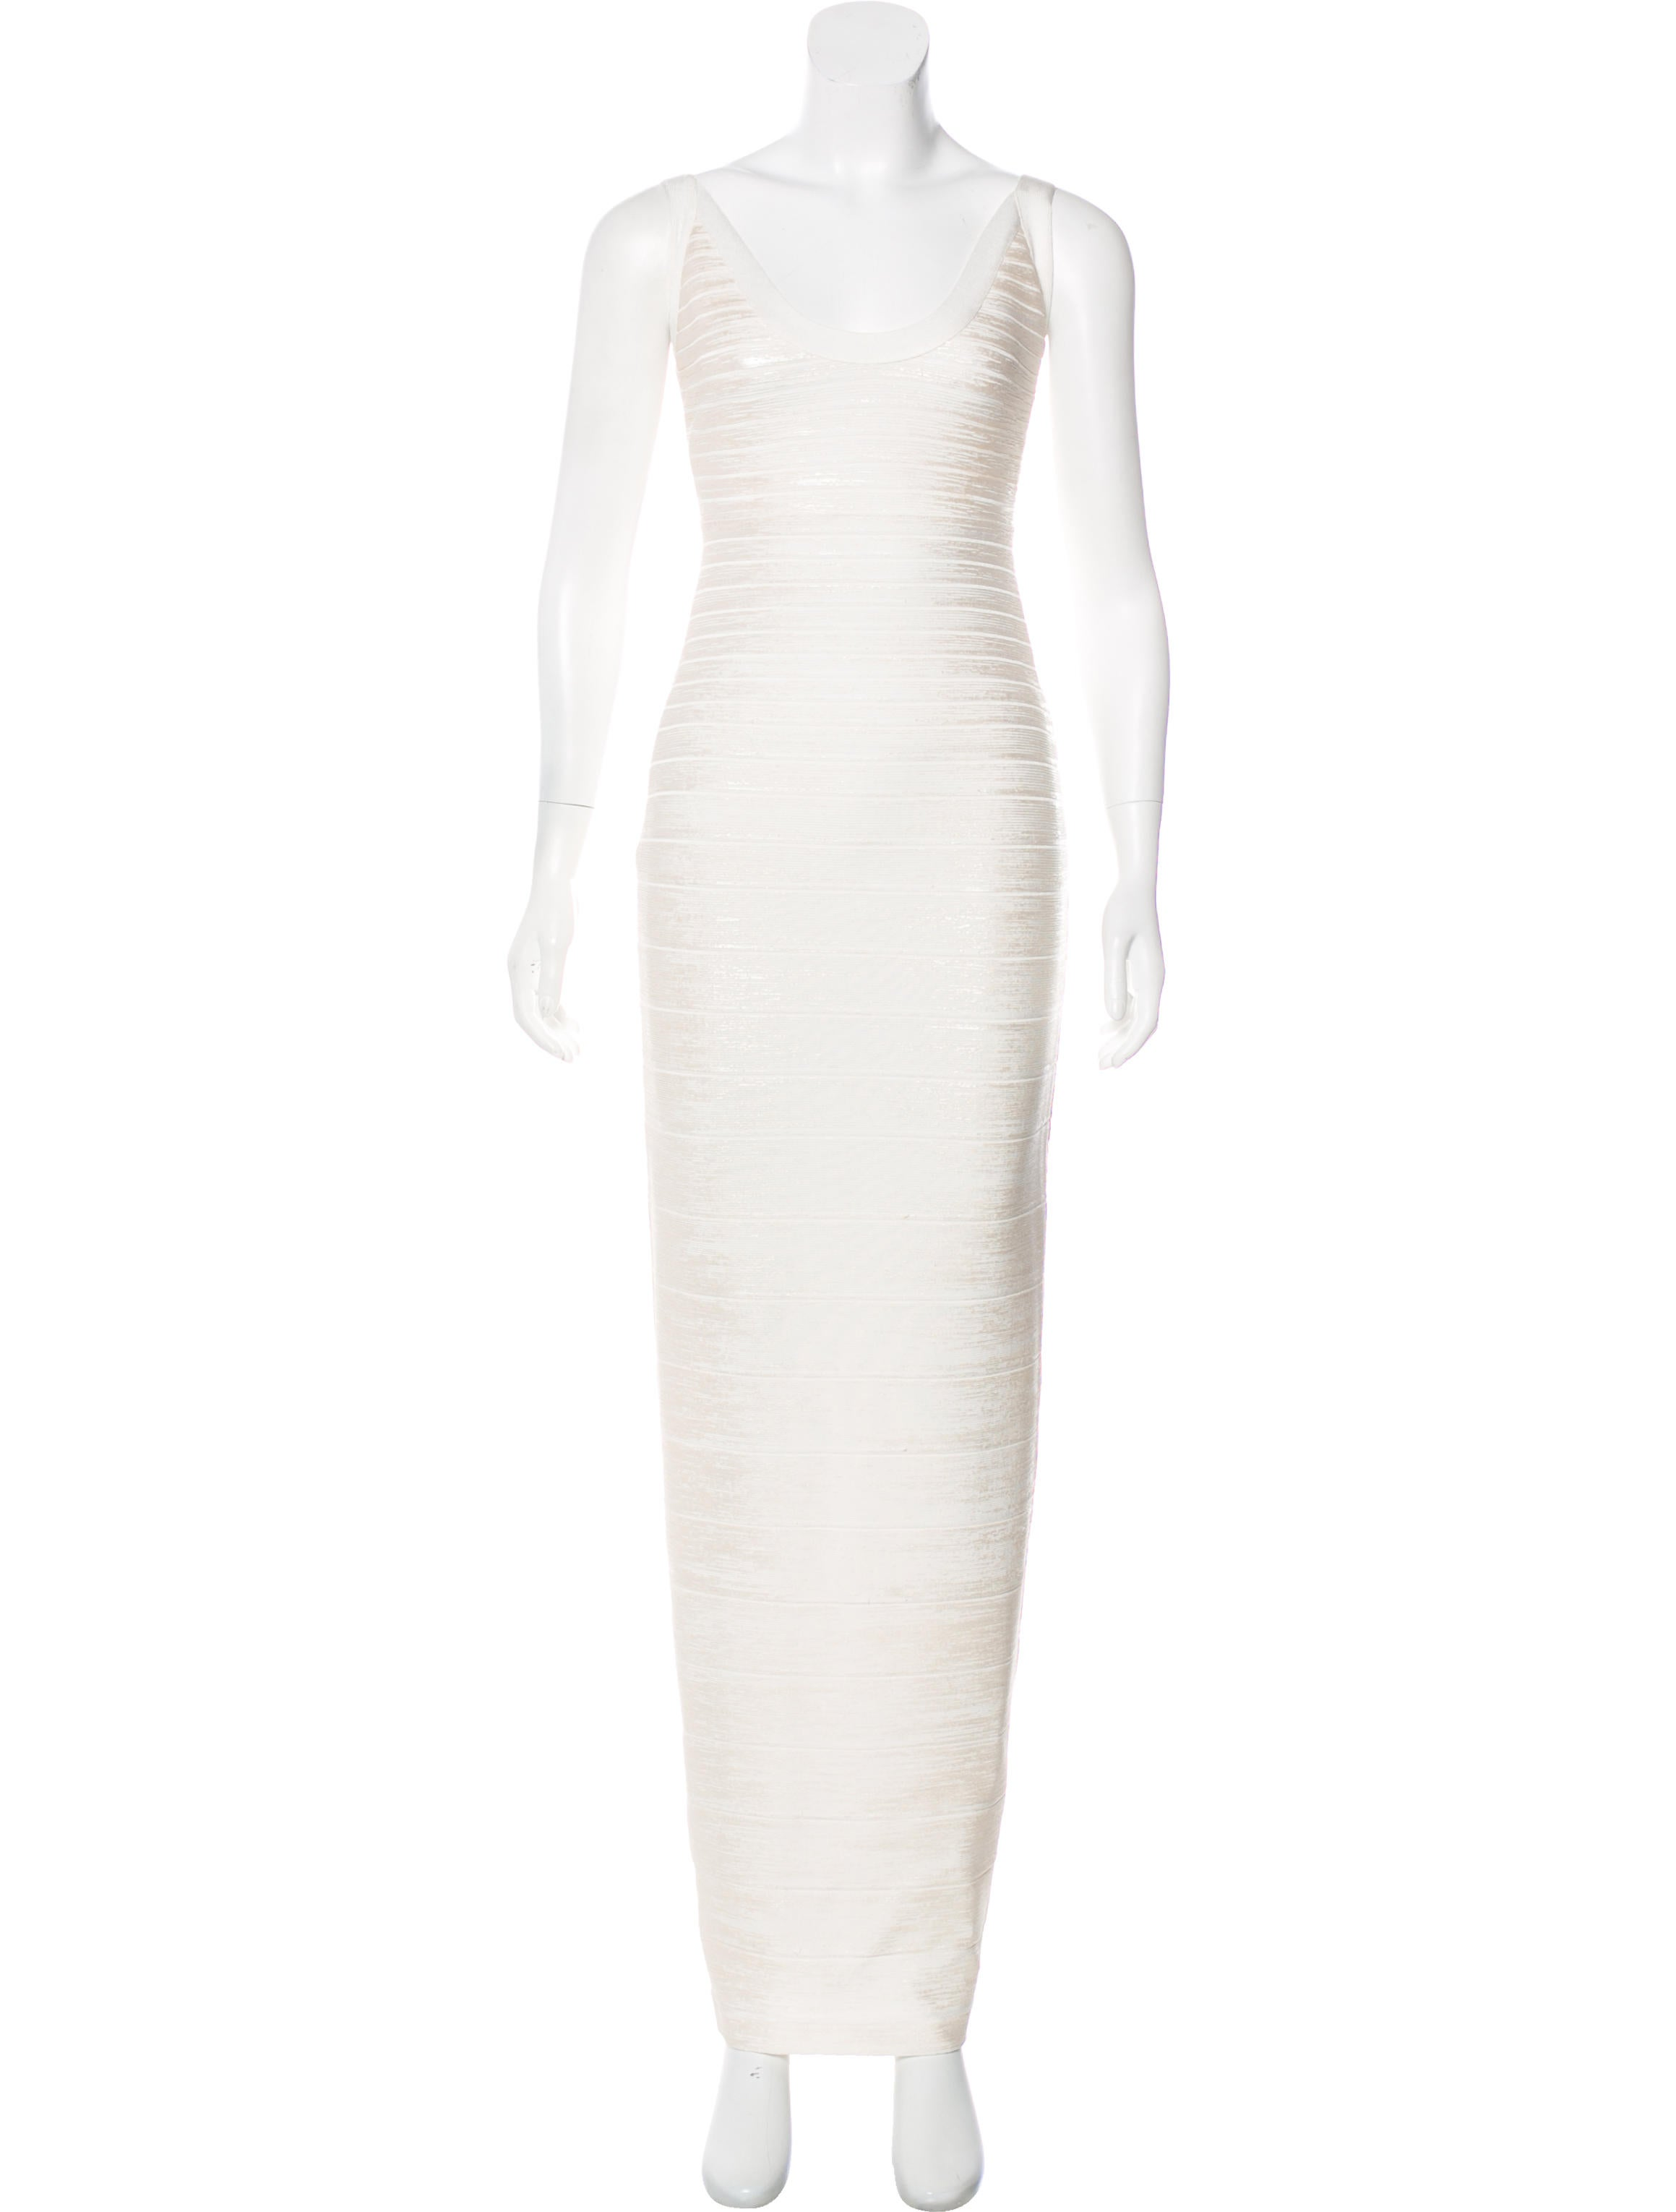 Herve Leger Shawna Foil Bandage Gown - Clothing - HEV35180 | The ...